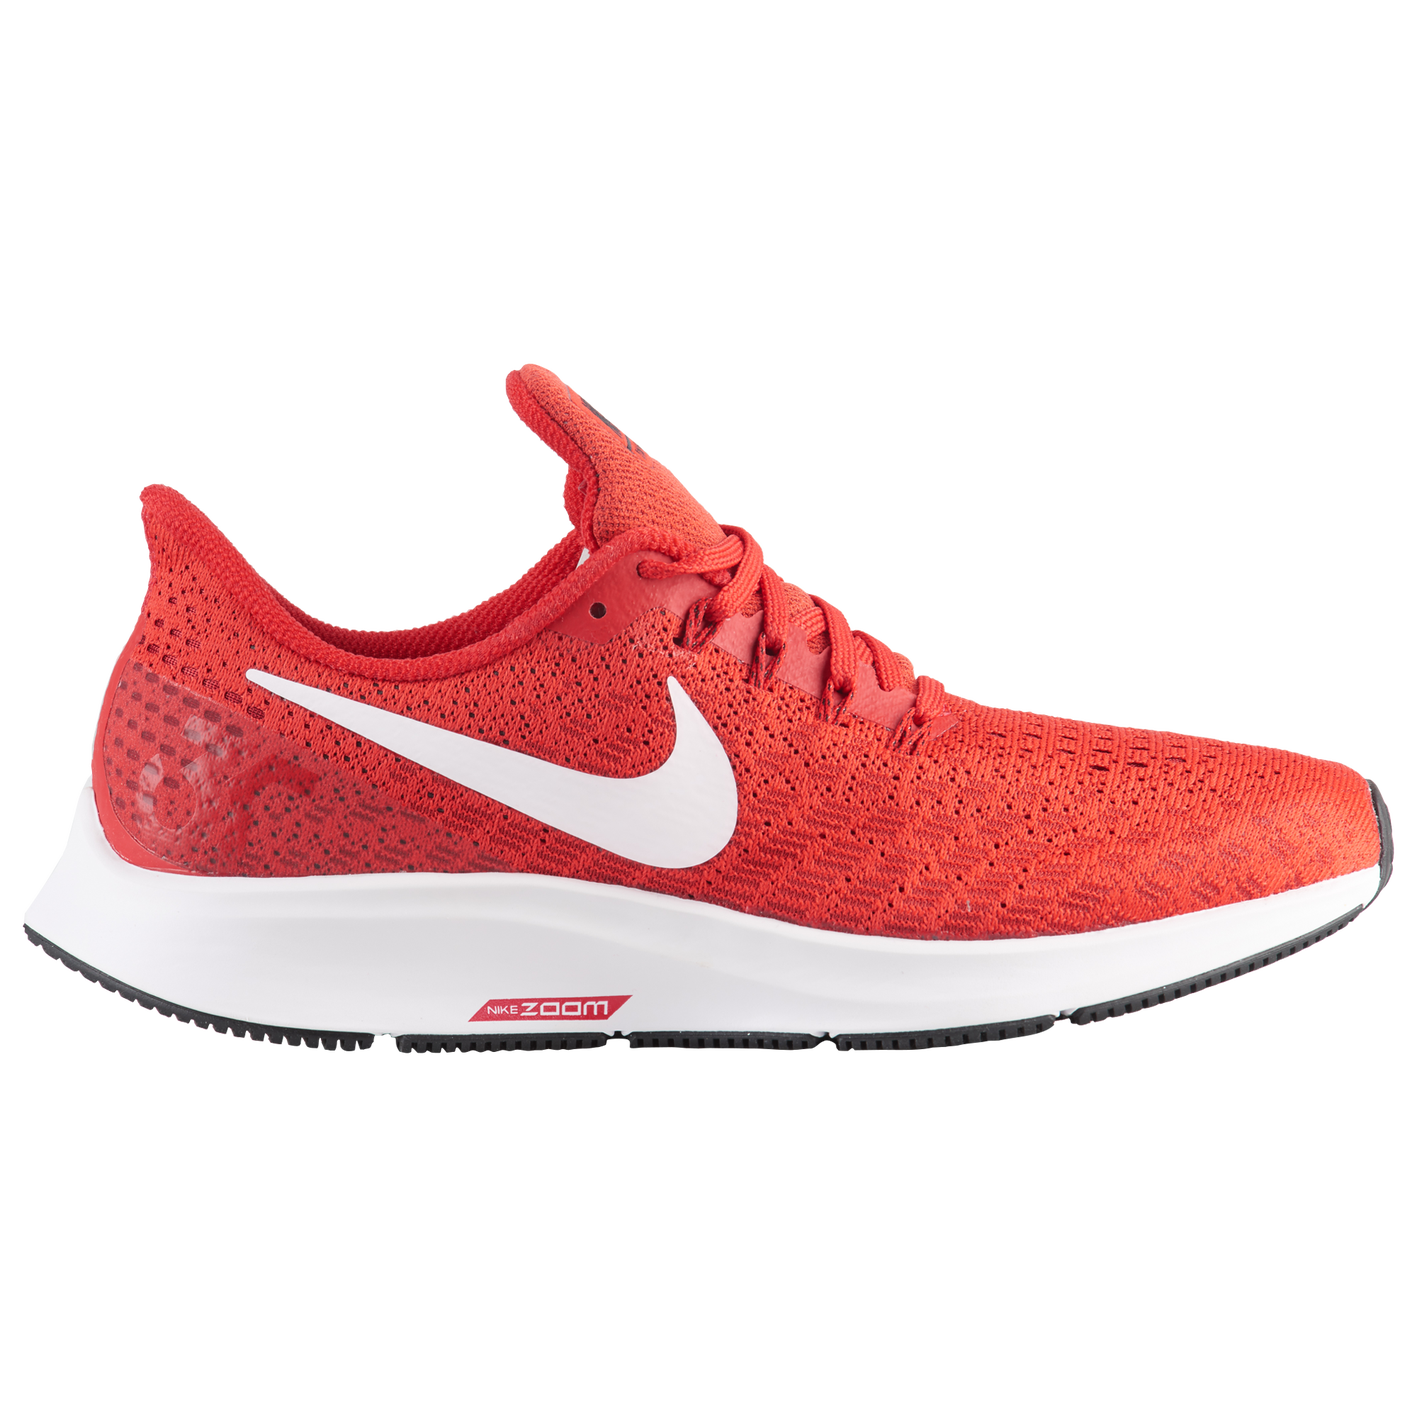 694649ef12292 Nike Air Zoom Pegasus 35 - Women s - Running - Shoes - University ...